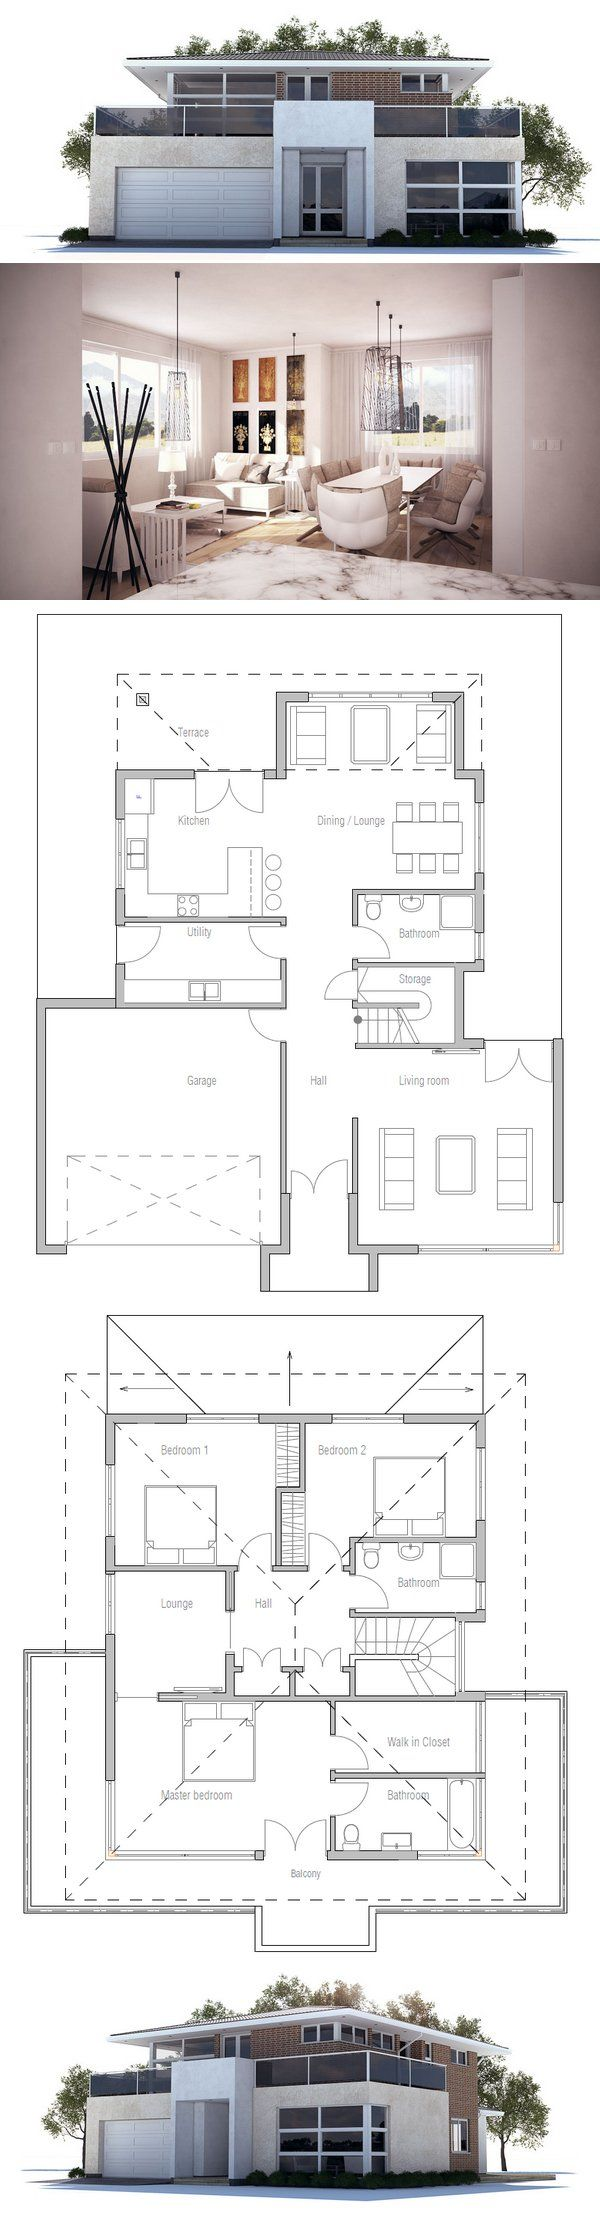 best 25 small modern house plans ideas on pinterest small house floor plans small home plans and small house plans